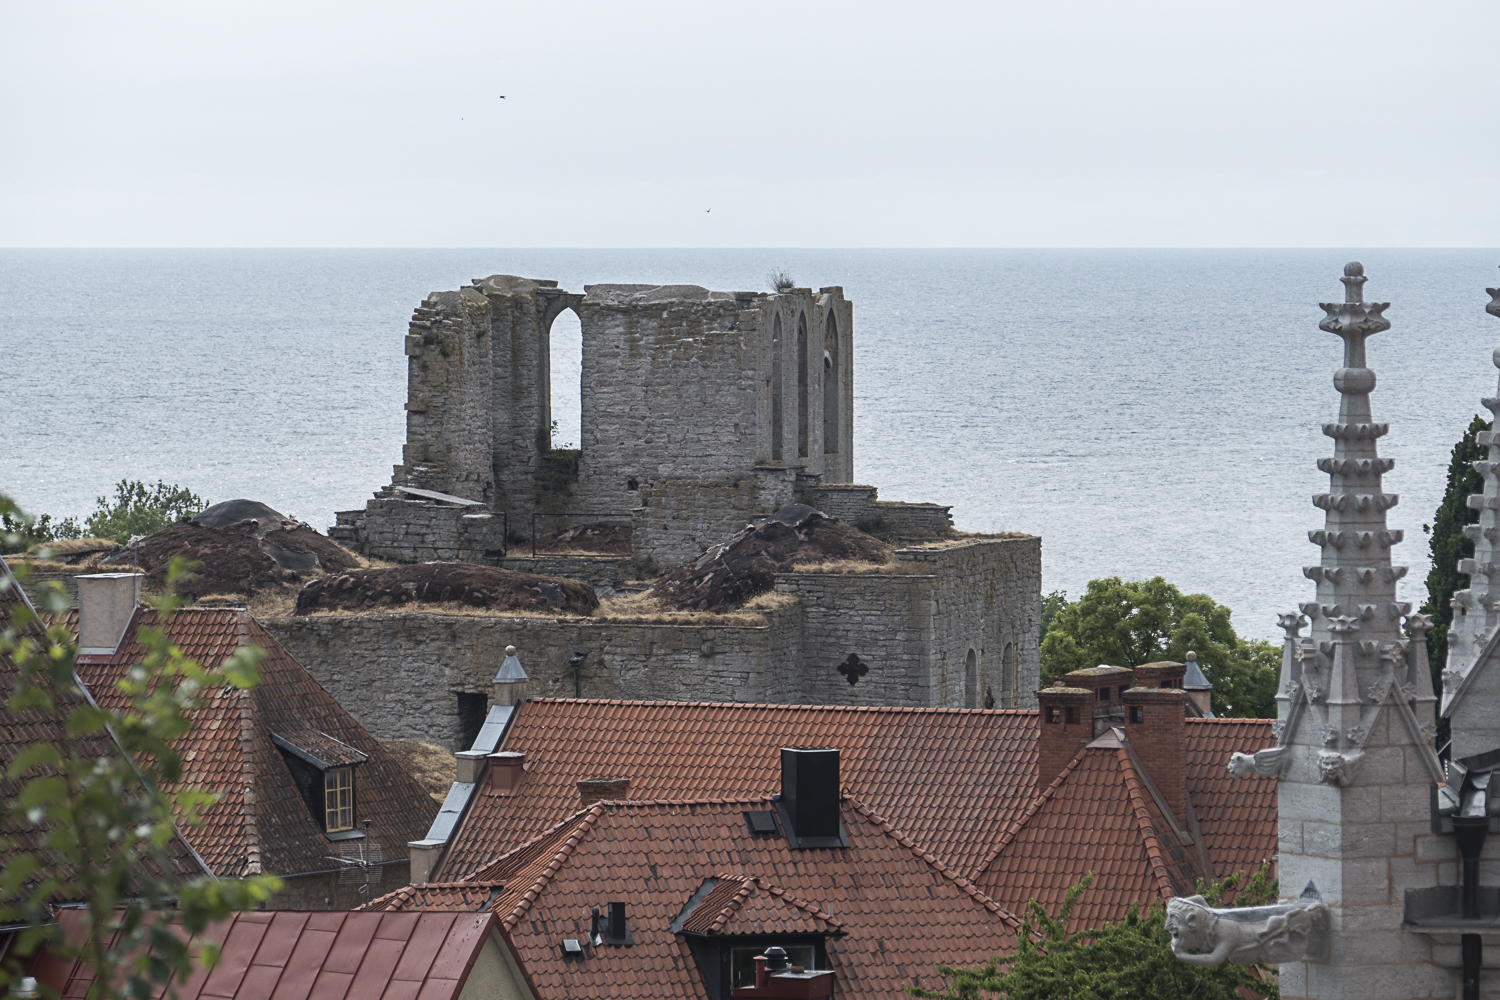 The remains of one of several medieval churches in Visby